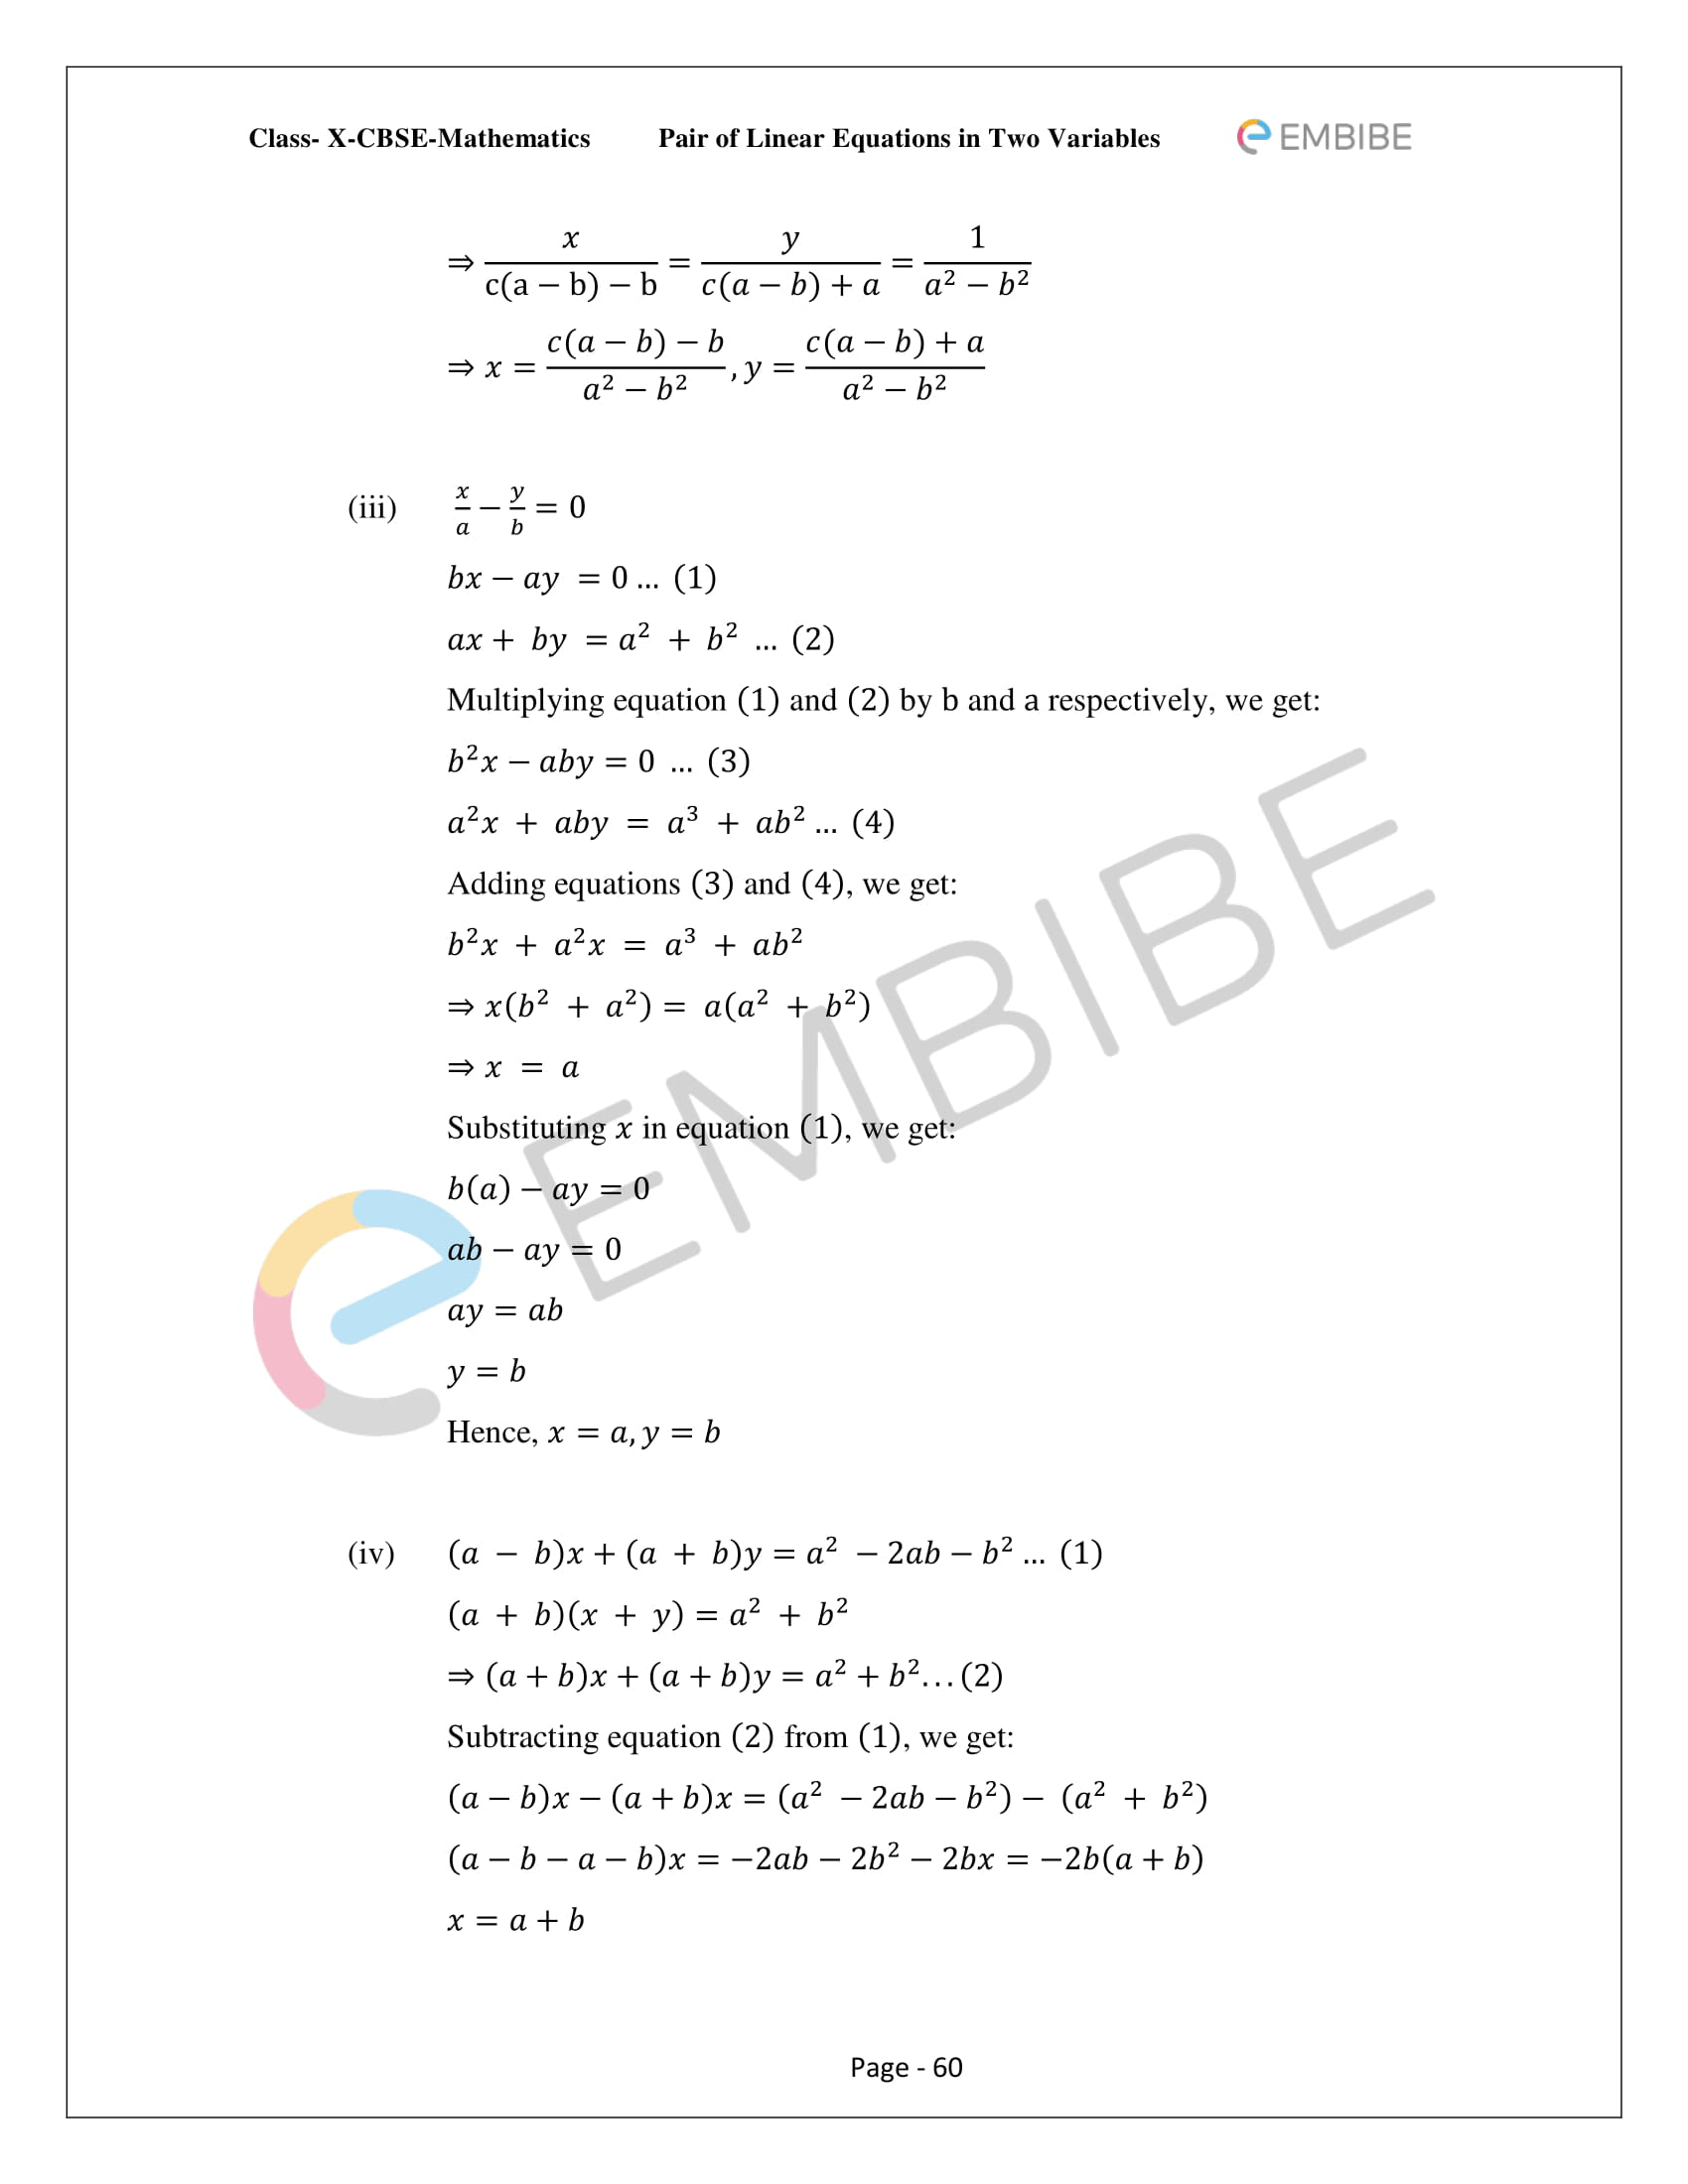 CBSE NCERT Solutions For Class 10 Maths Chapter 3 - Pair of Linear Equations In Two Variables - 60